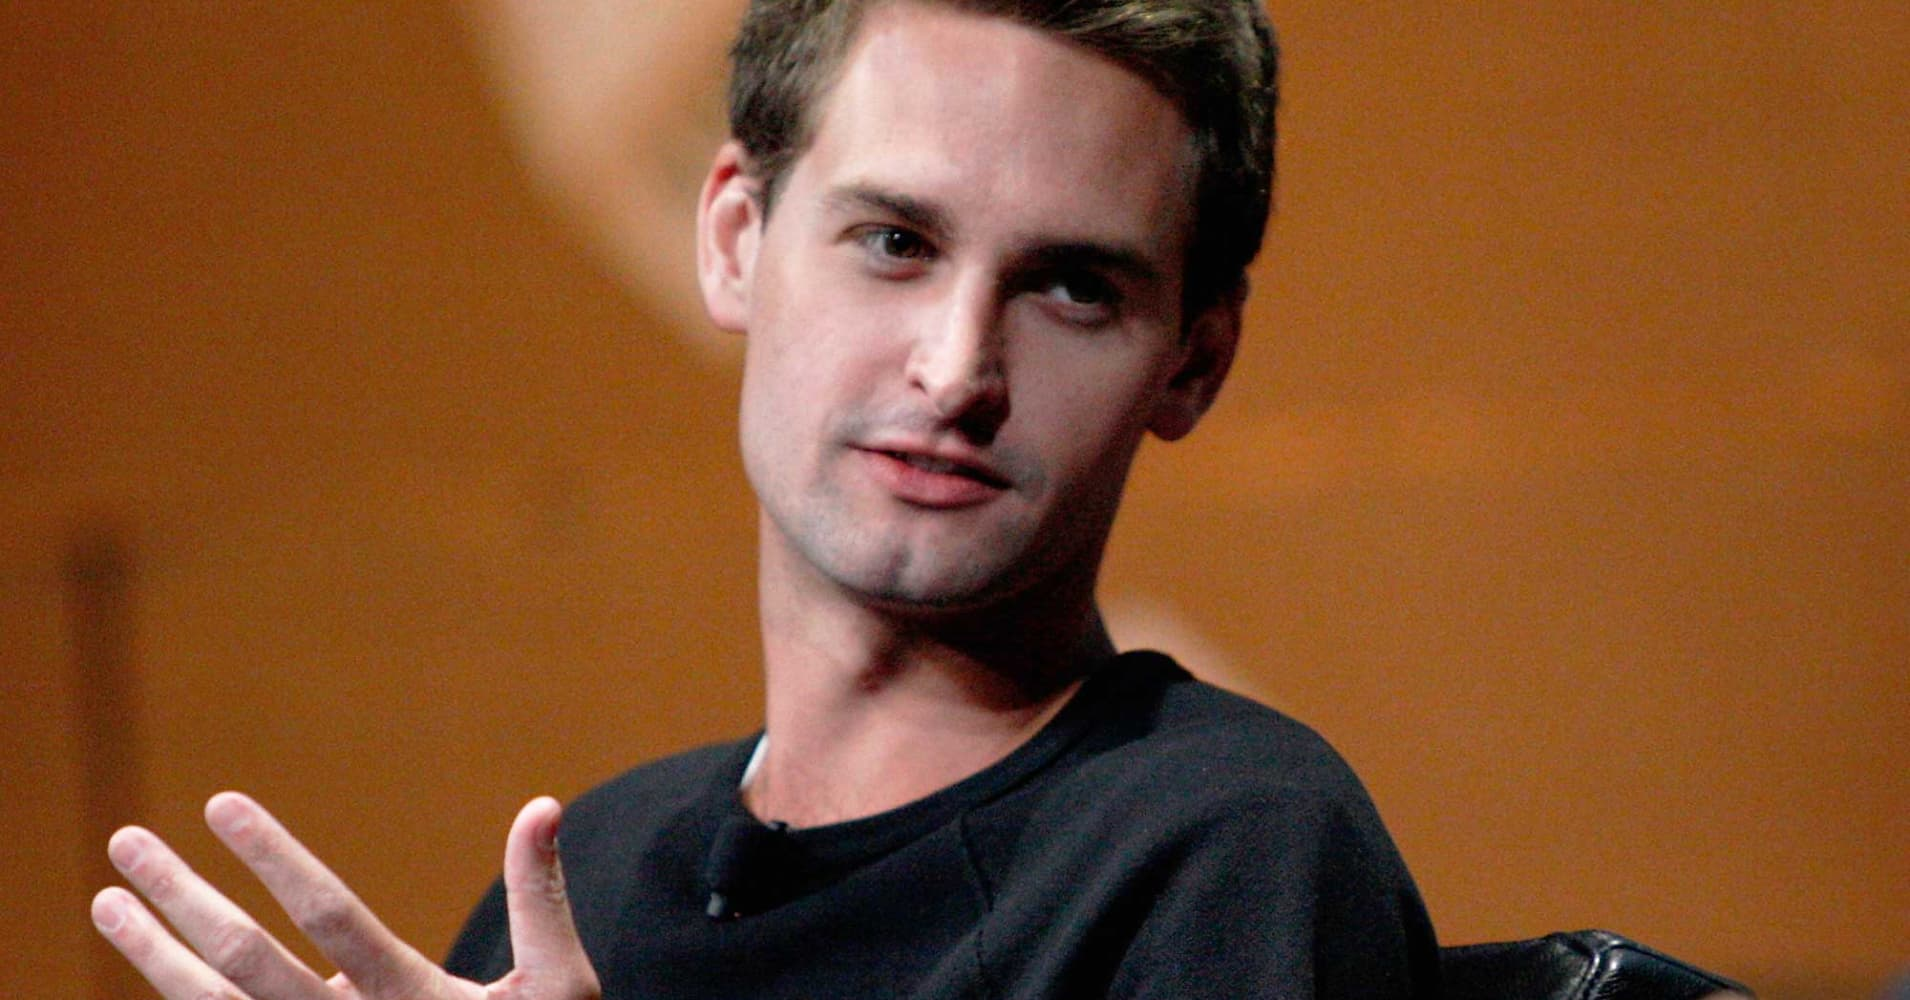 Snapchat Shares Get Much-needed Wall Street Upgrade a Day After Falling to New Post-IPO Low